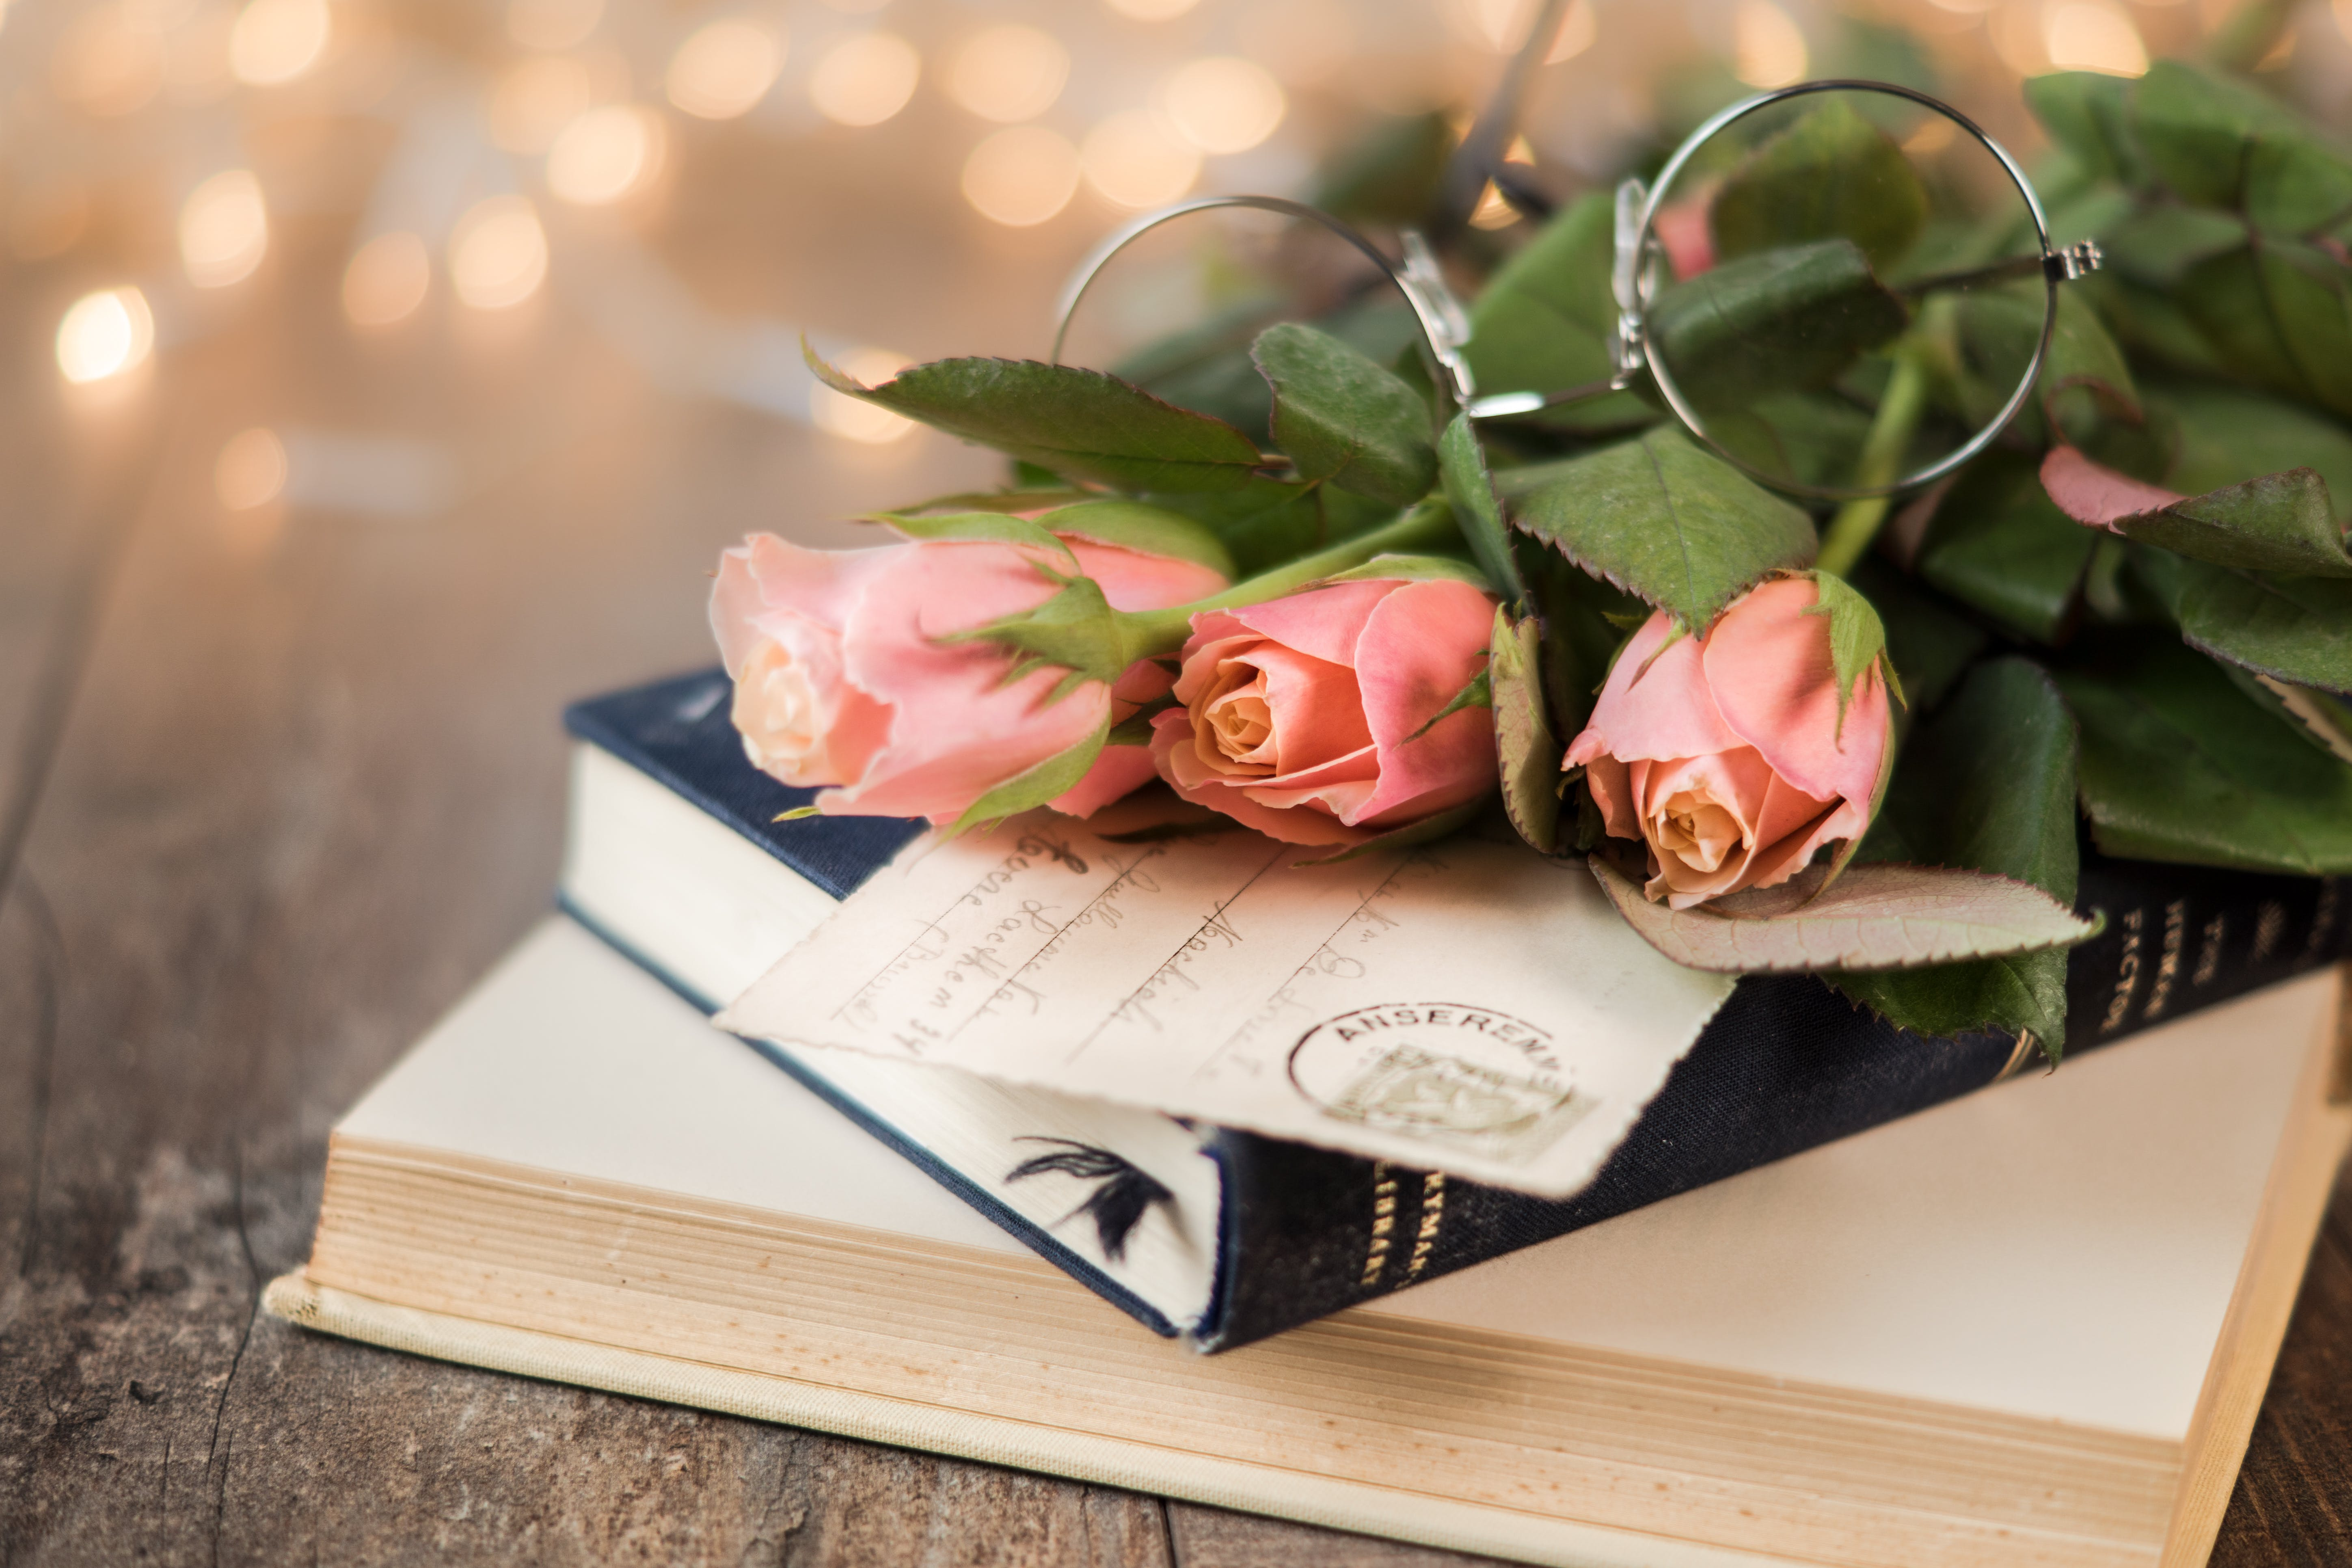 Pink Rose Flowers and Book